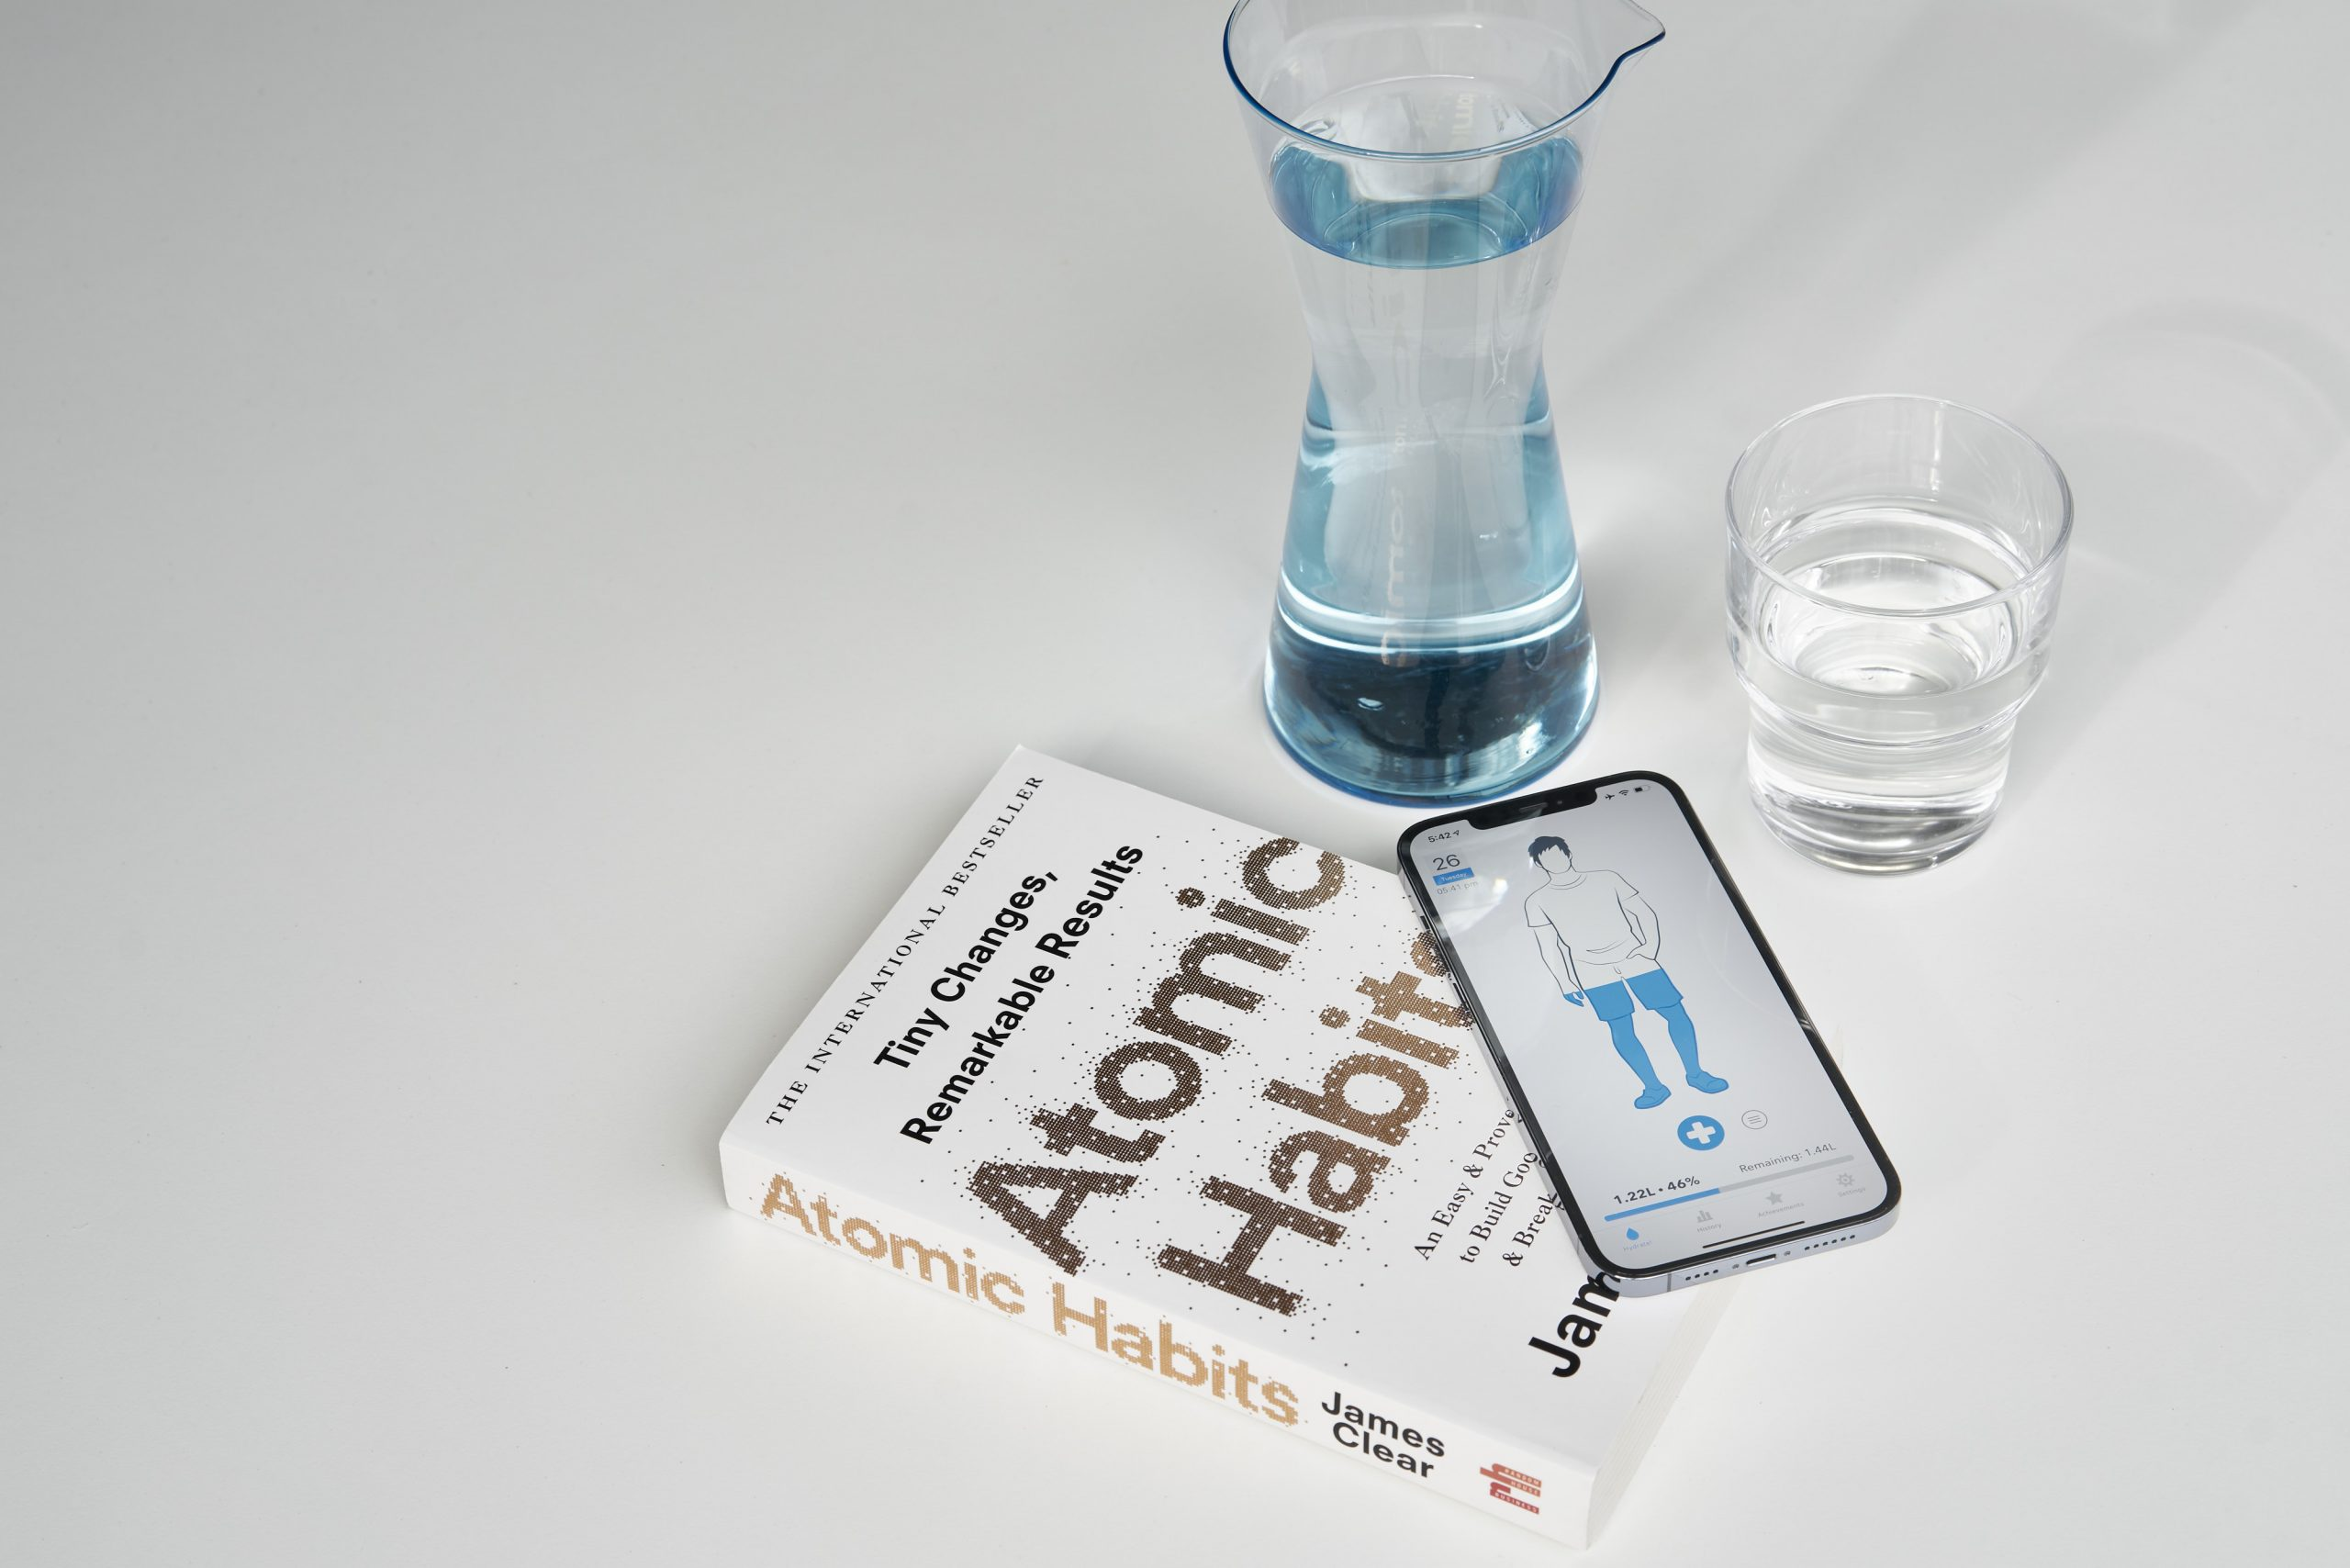 Atomics Habits Book Review - HEY GENTS